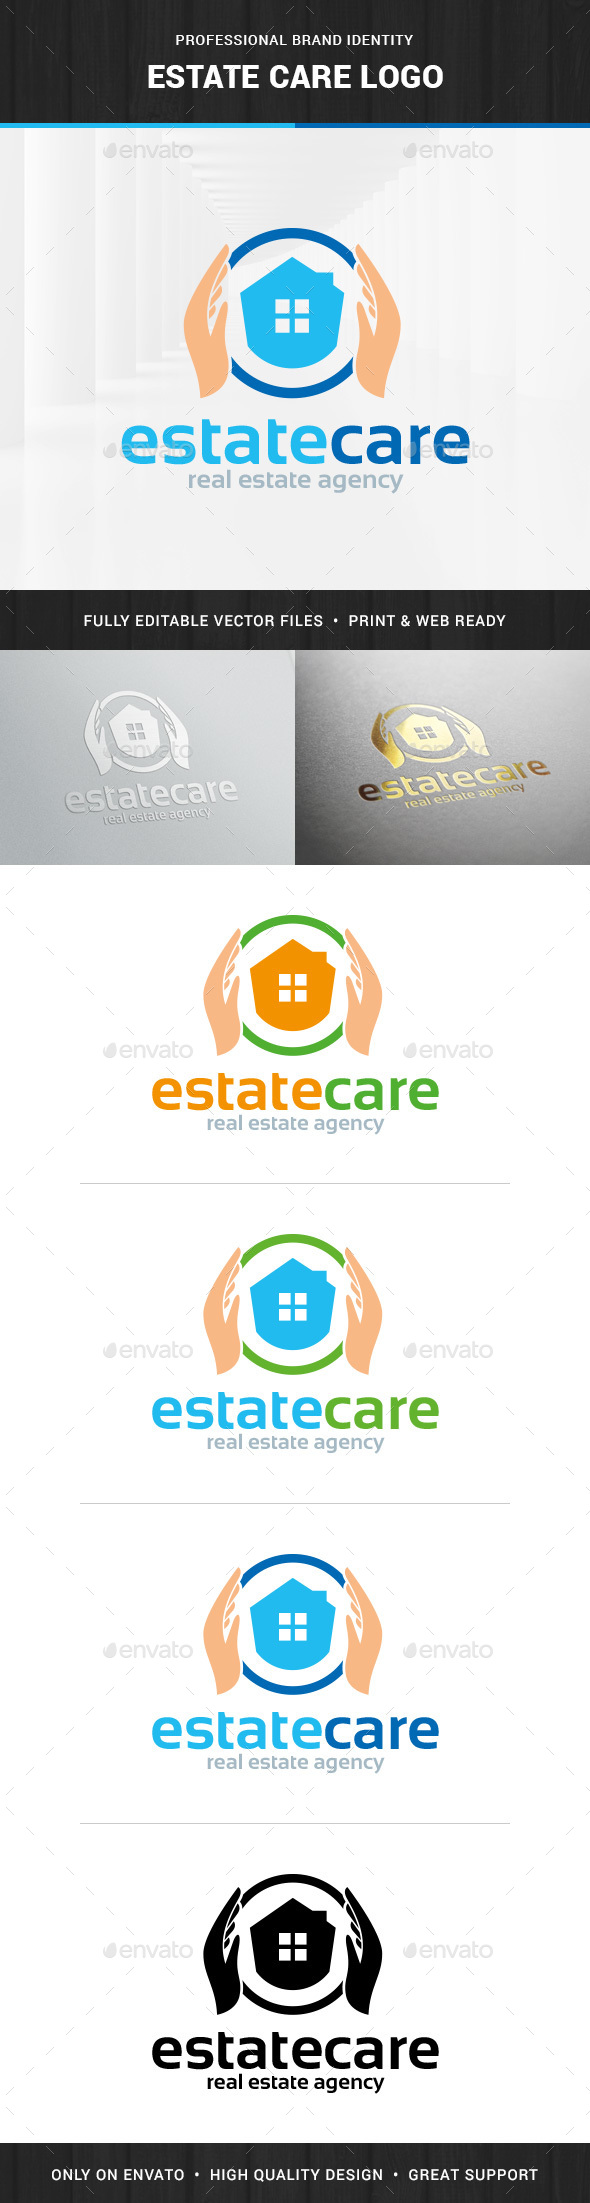 Estate Care Logo Template - Buildings Logo Templates